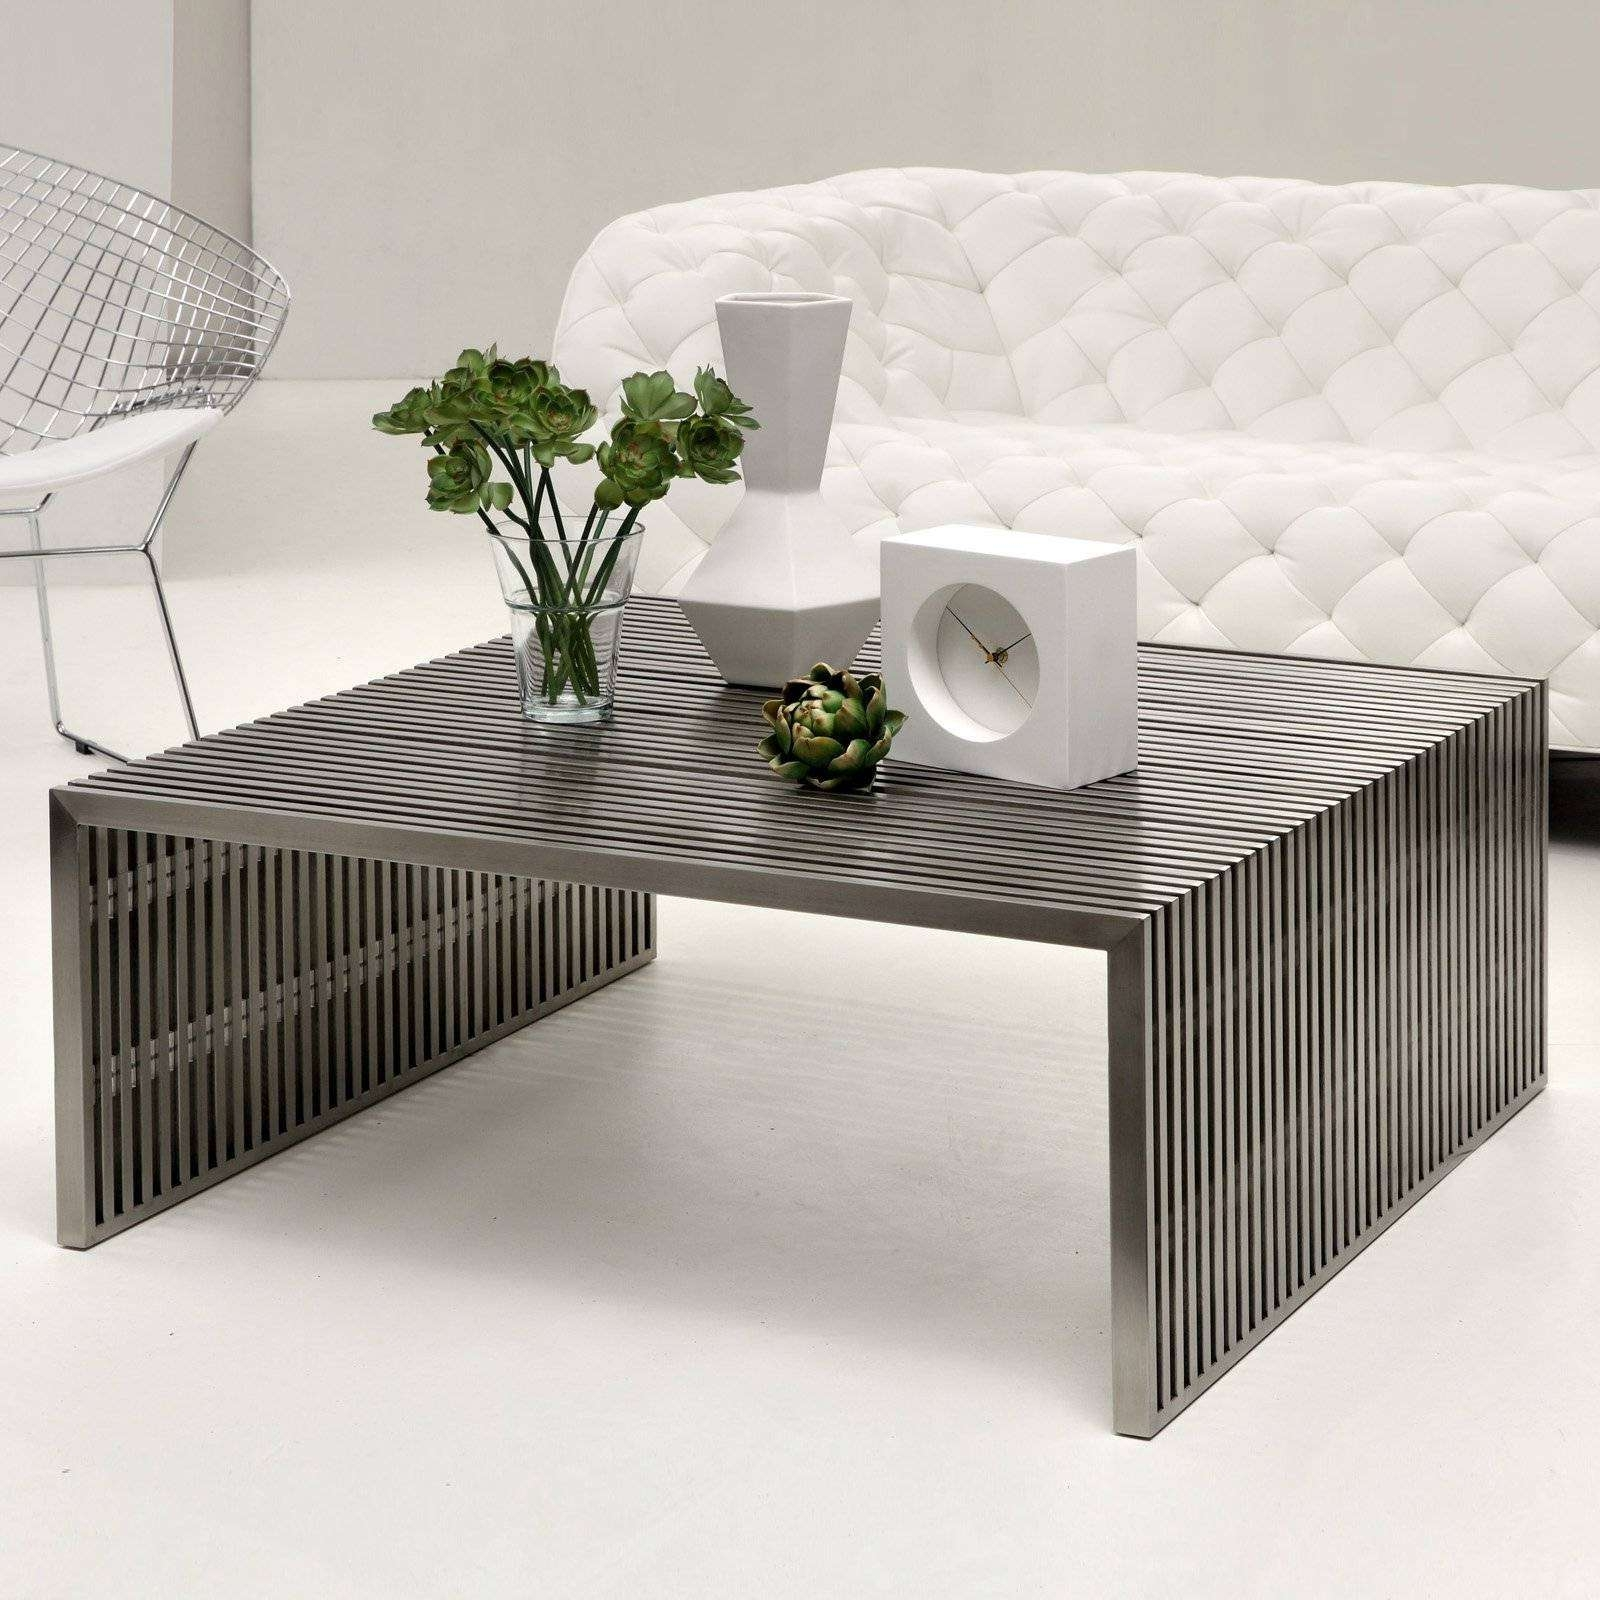 Best And Newest Metal Square Coffee Tables With Regard To Furniture & Organization: Modern Metal Square Coffee Tables For (View 6 of 20)